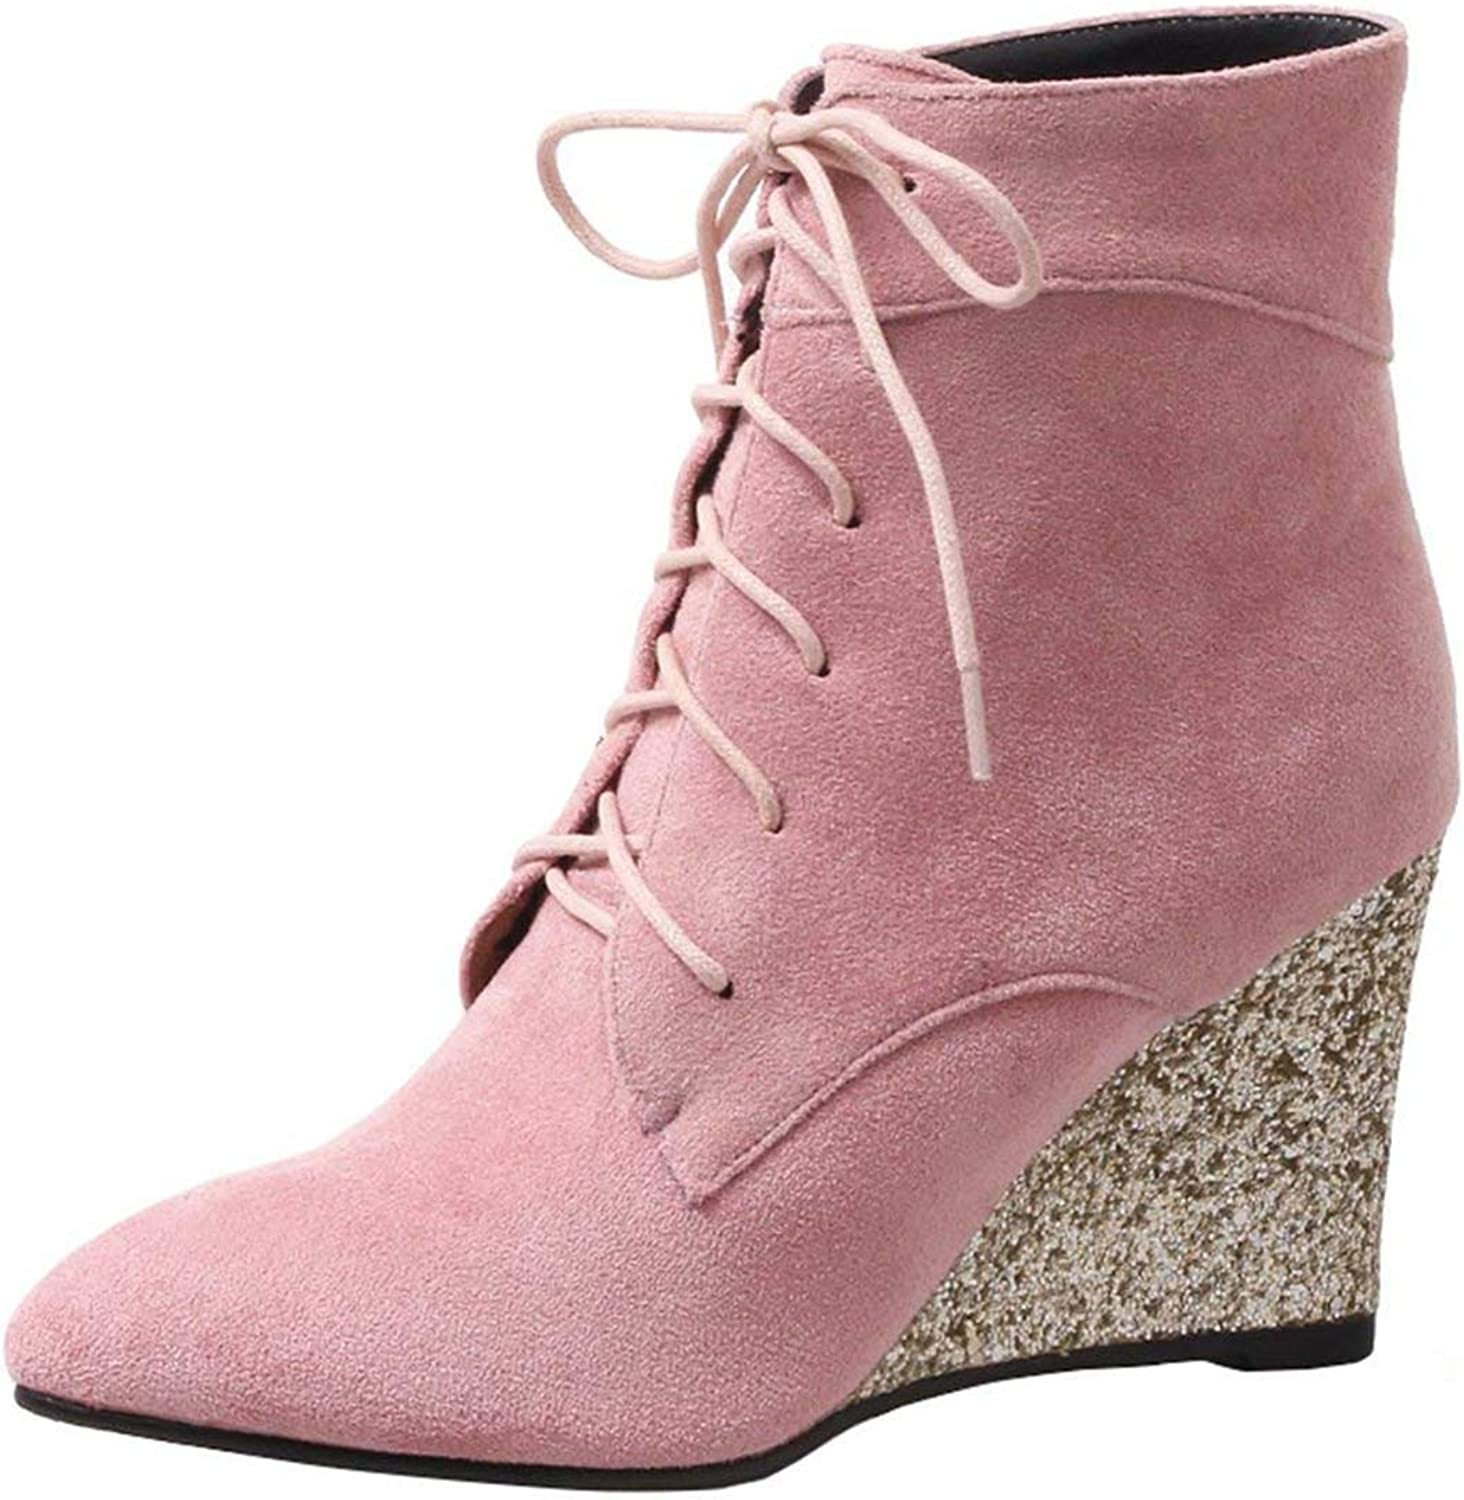 Vitalo Womens High Heel Lace Up Wedge Ankle Boots Pointed Toe Glitter Heel Booties